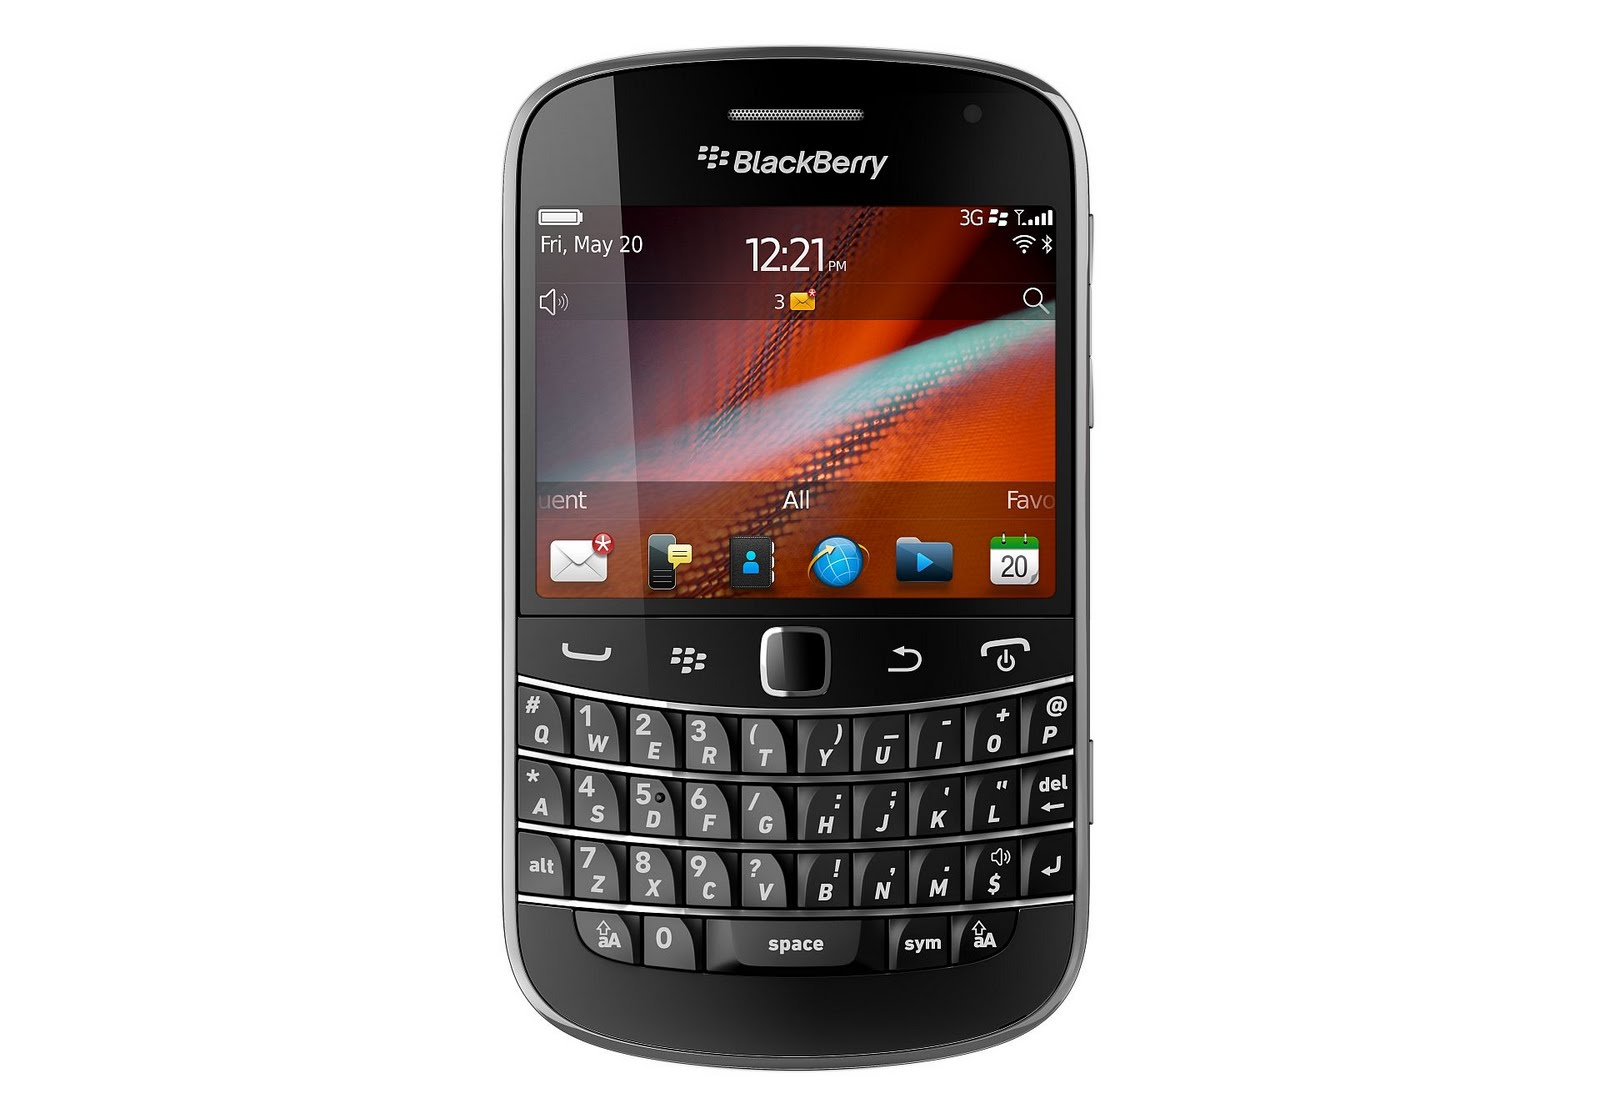 Http Mzansindaba Blogspot Com 2011 09 Blackberry Bold 9900 Now In Mzansi Html